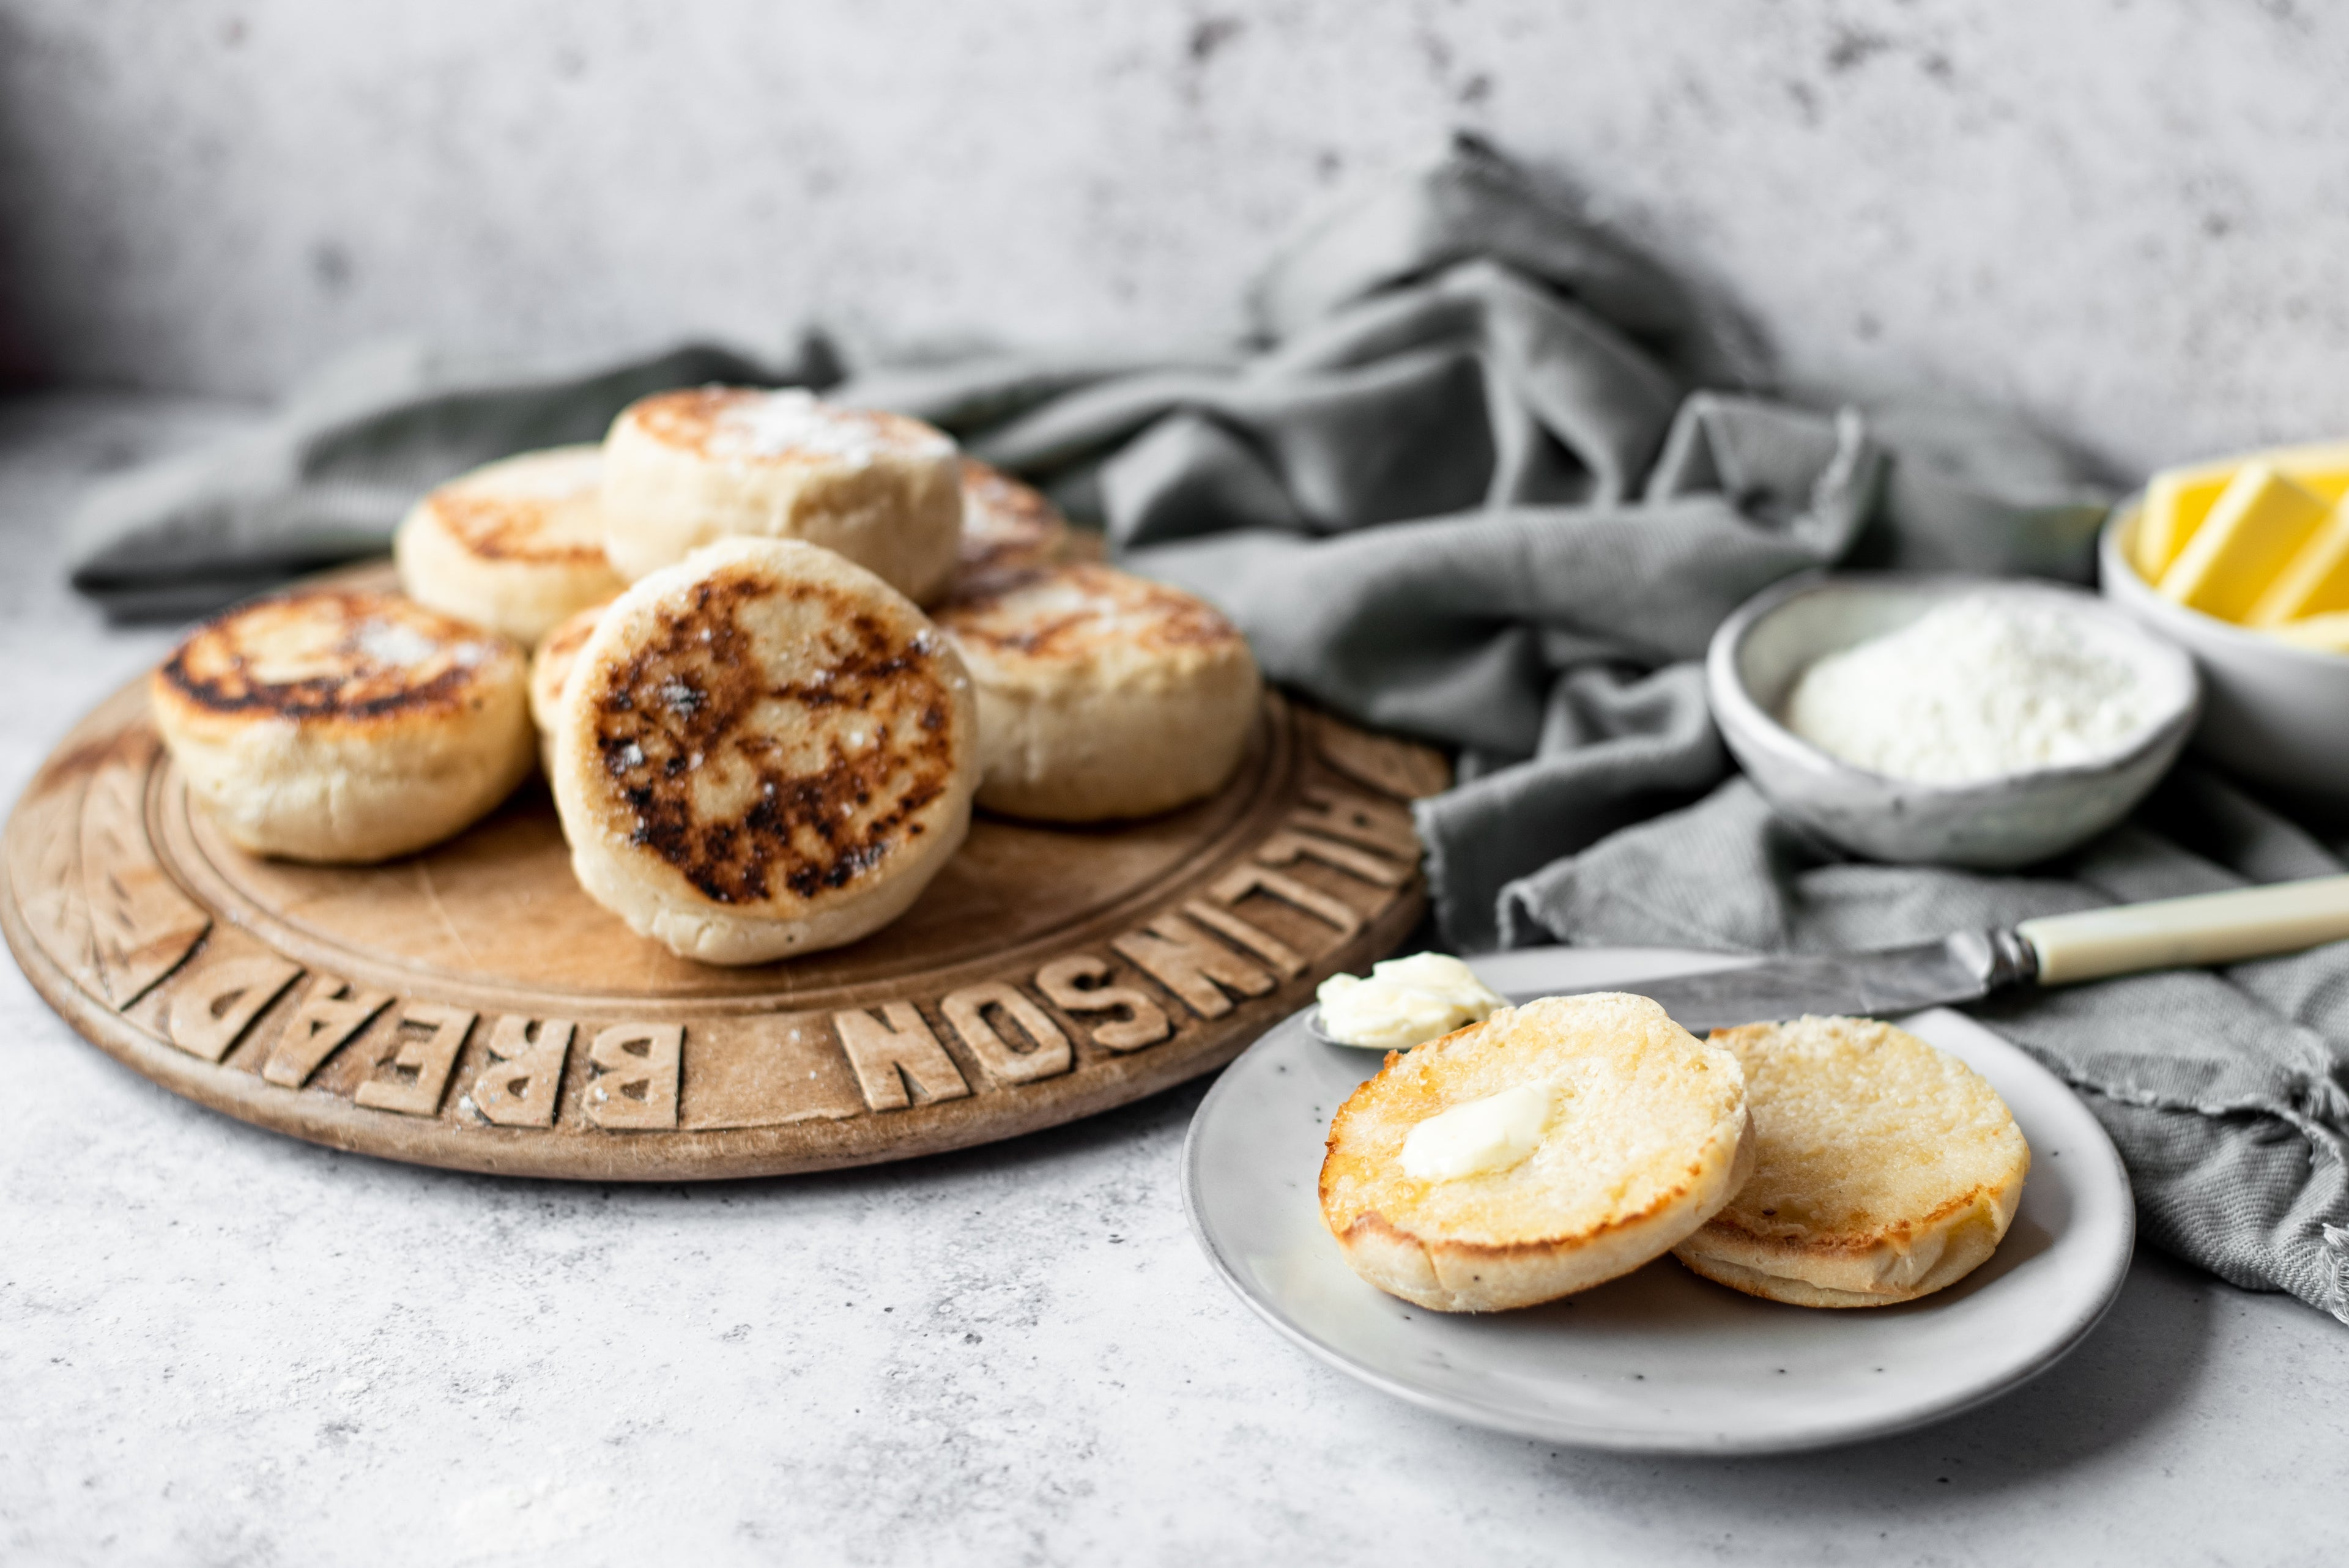 Allinsons-English-Muffins-FULL-RES-7.jpg